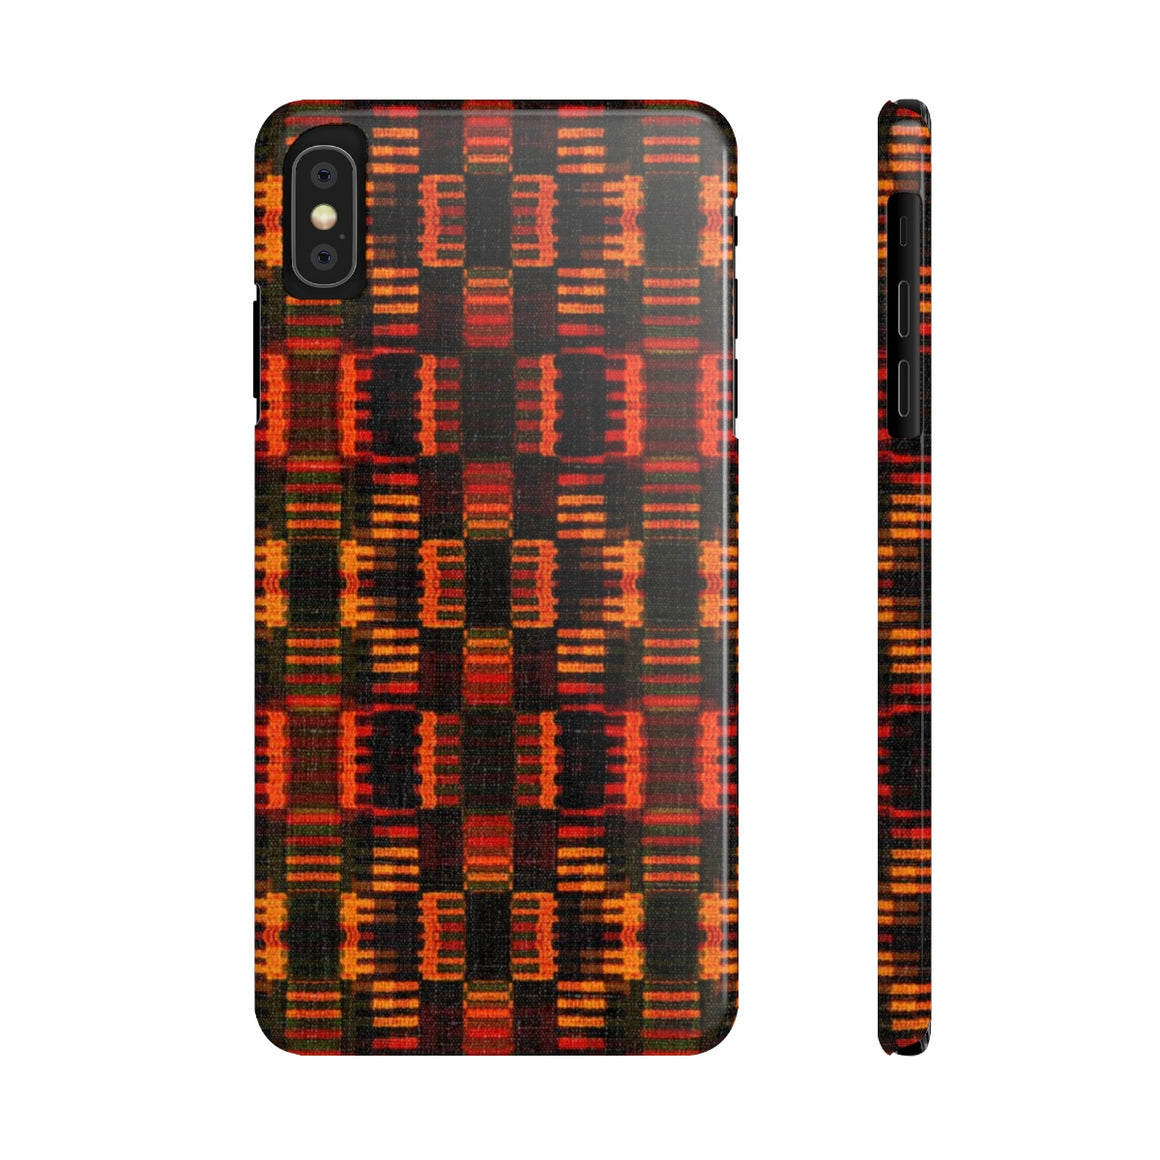 Kente Premium Cell Mate Slim Phone Cases